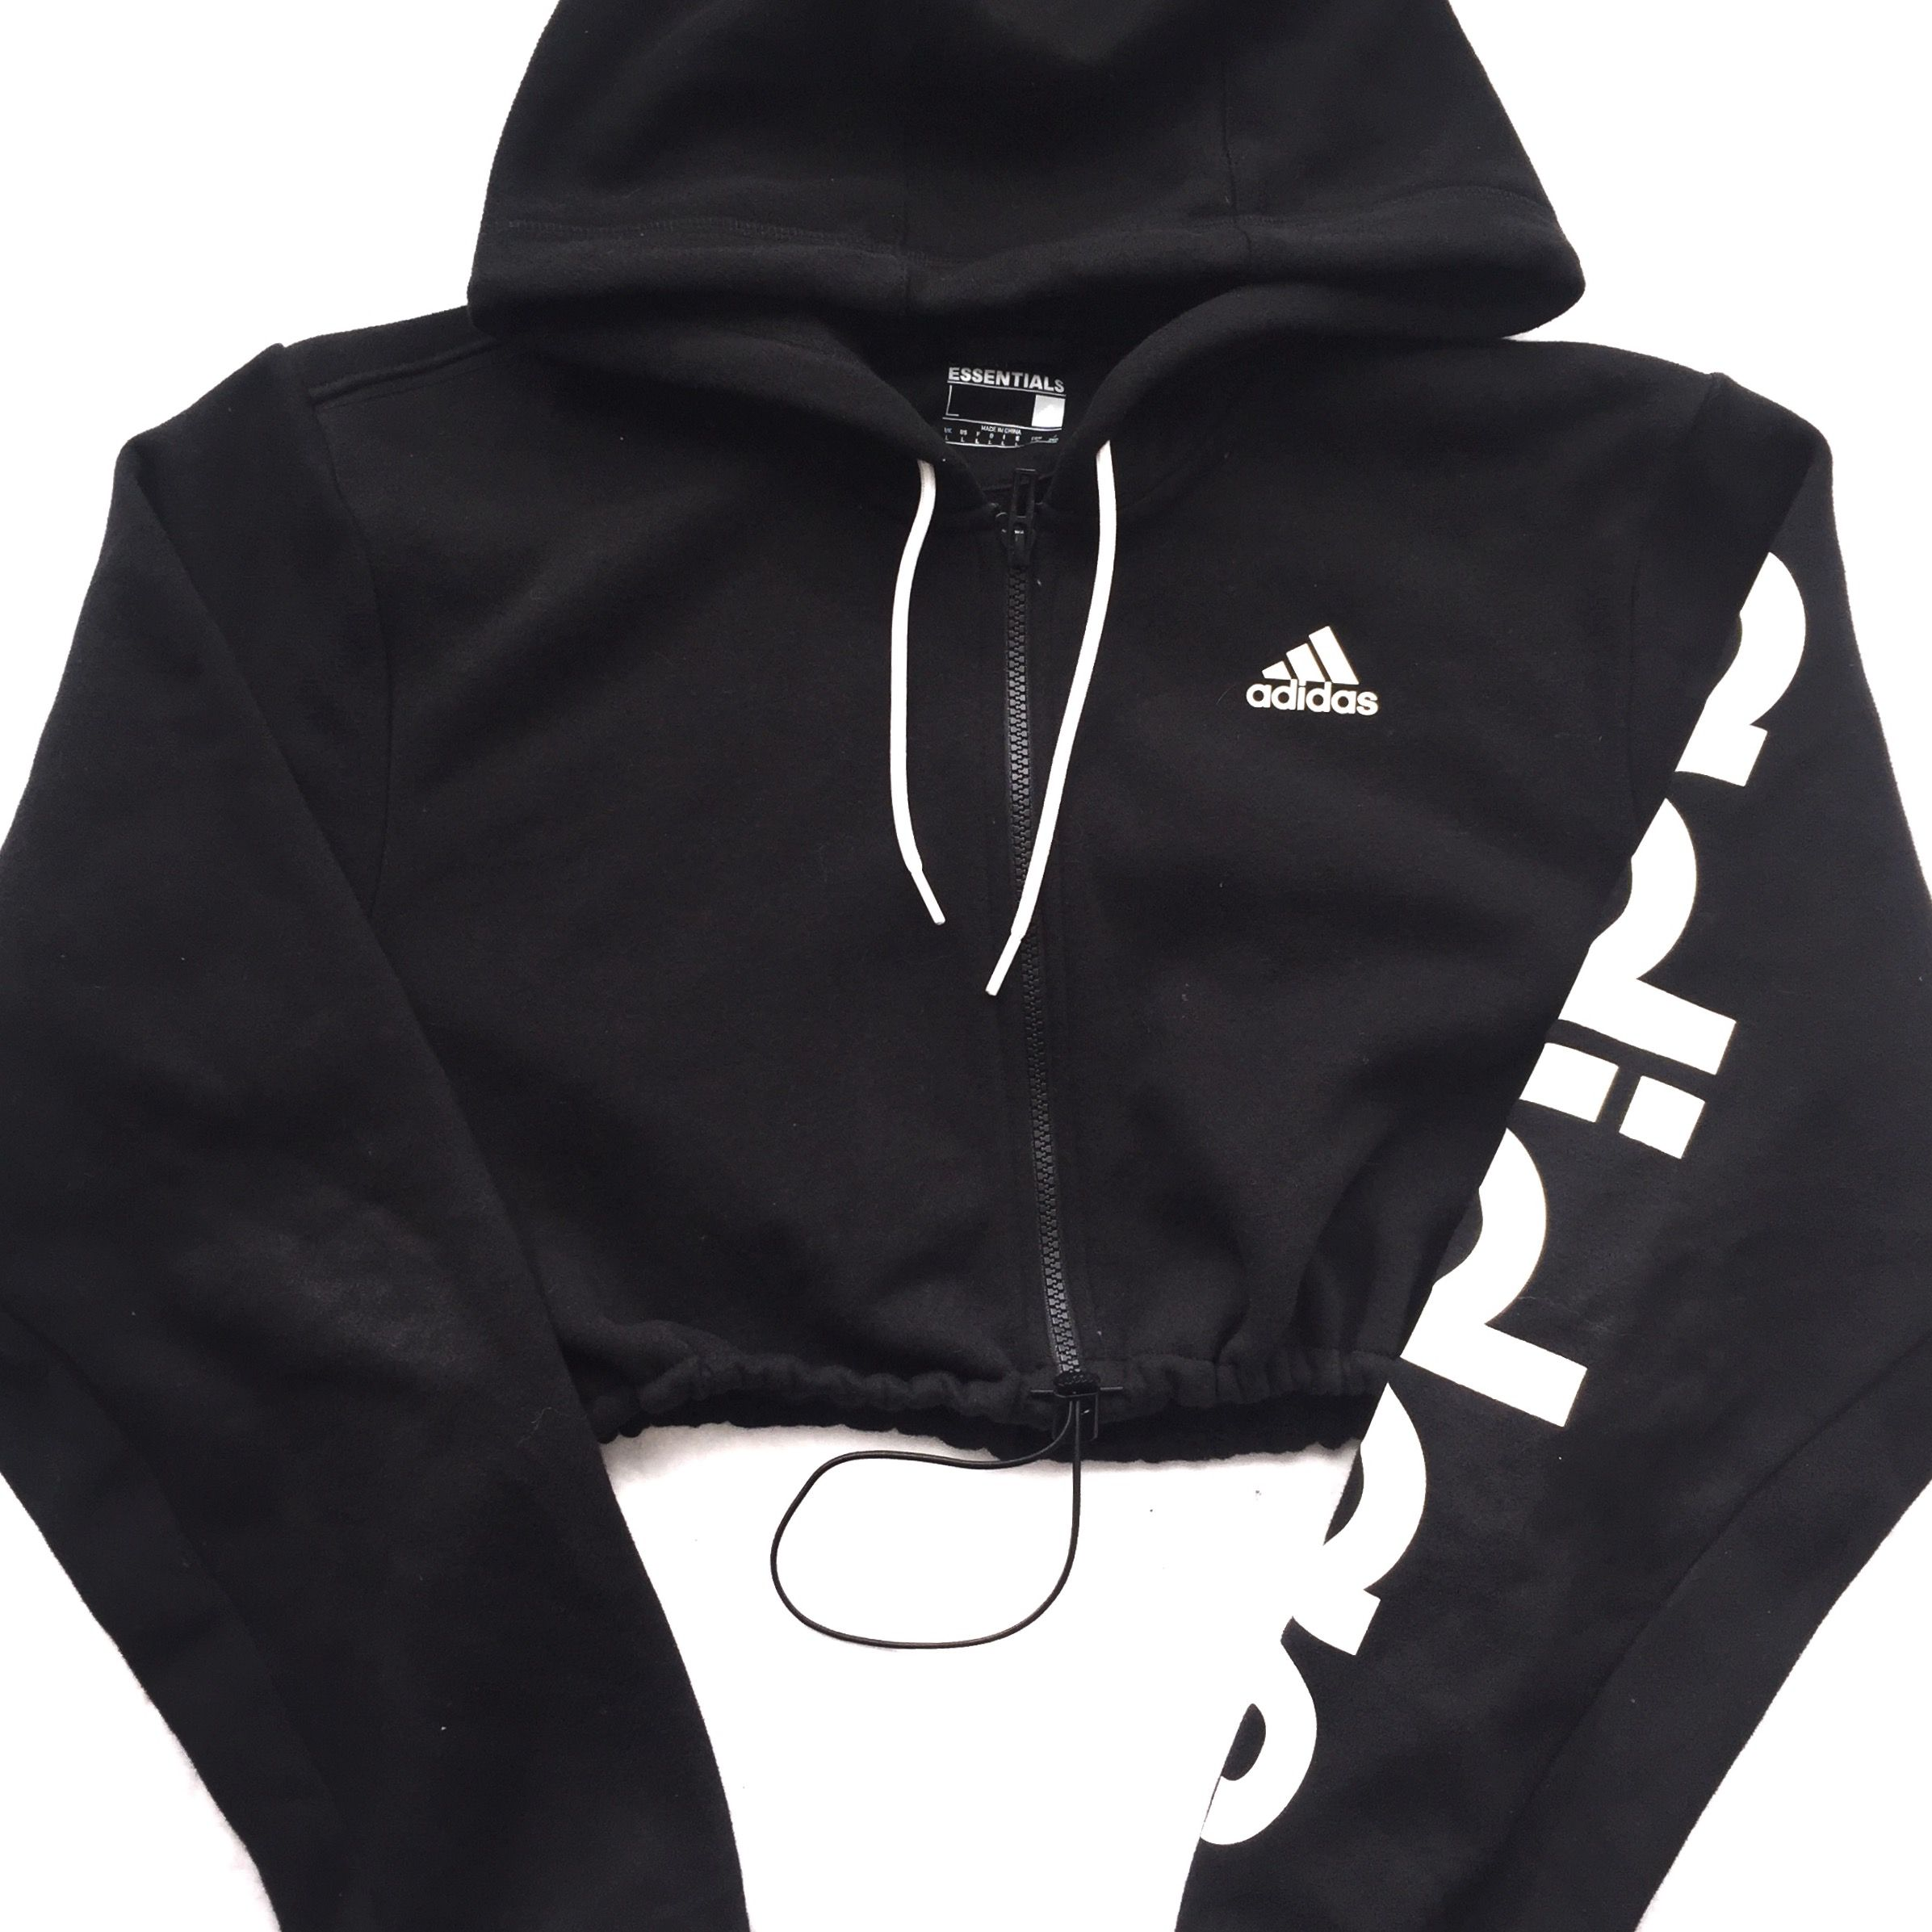 Queens Reworked Adidas Logo Crop Hoody Clothes Hoodies Adidas